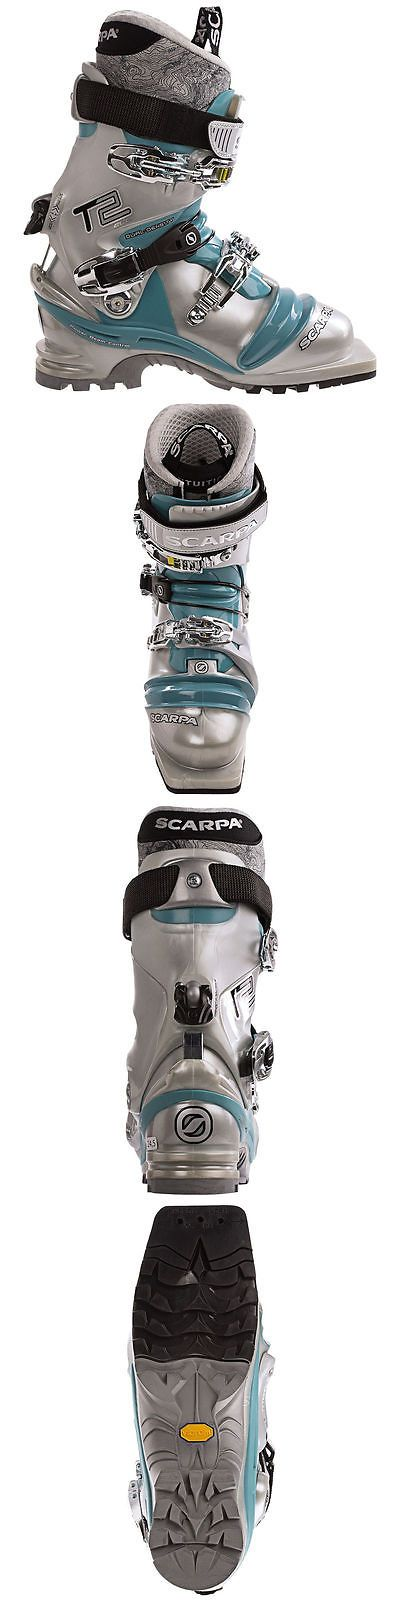 Telemarking 62214: Scarpa Women S T2 Eco Ski Boots Blue 23 -> BUY IT NOW ONLY: $199.98 on eBay!